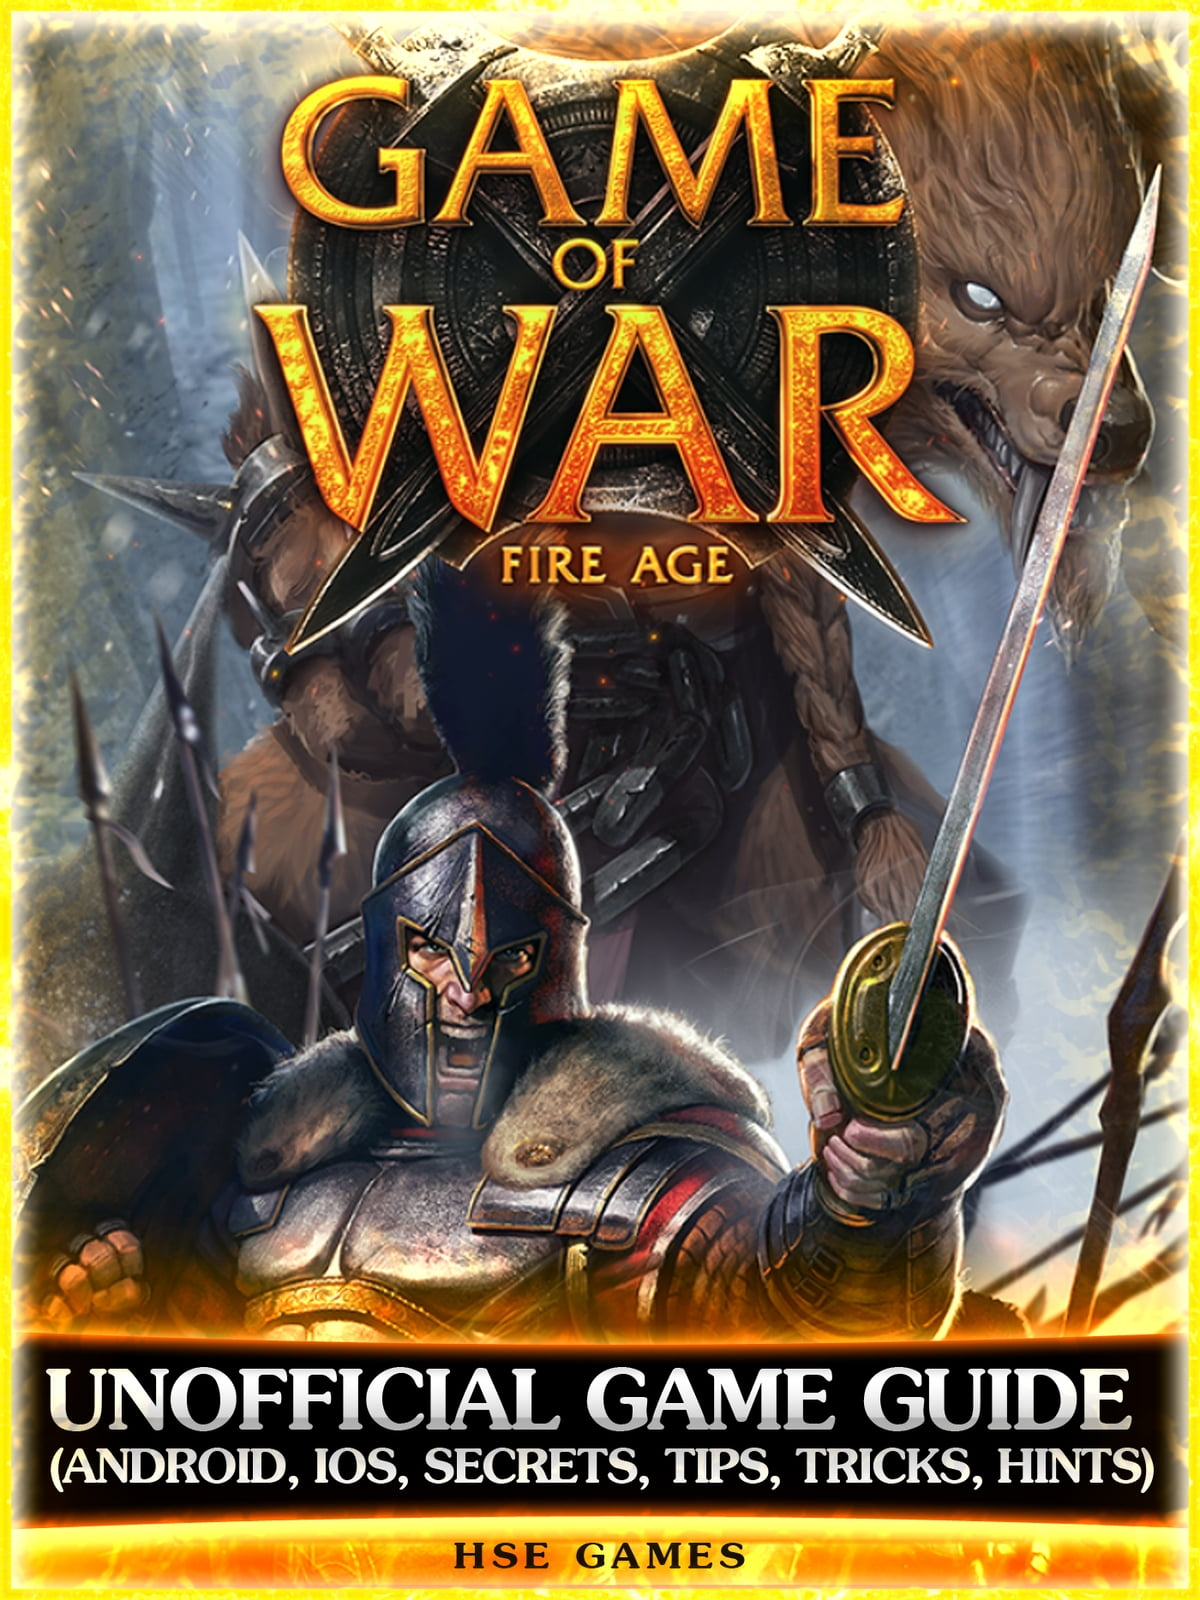 Game of War Fire Age Unofficial Game Guide (Android, Ios, Secrets, Tips,  Tricks, Hints) ebook by Hse Games - Rakuten Kobo